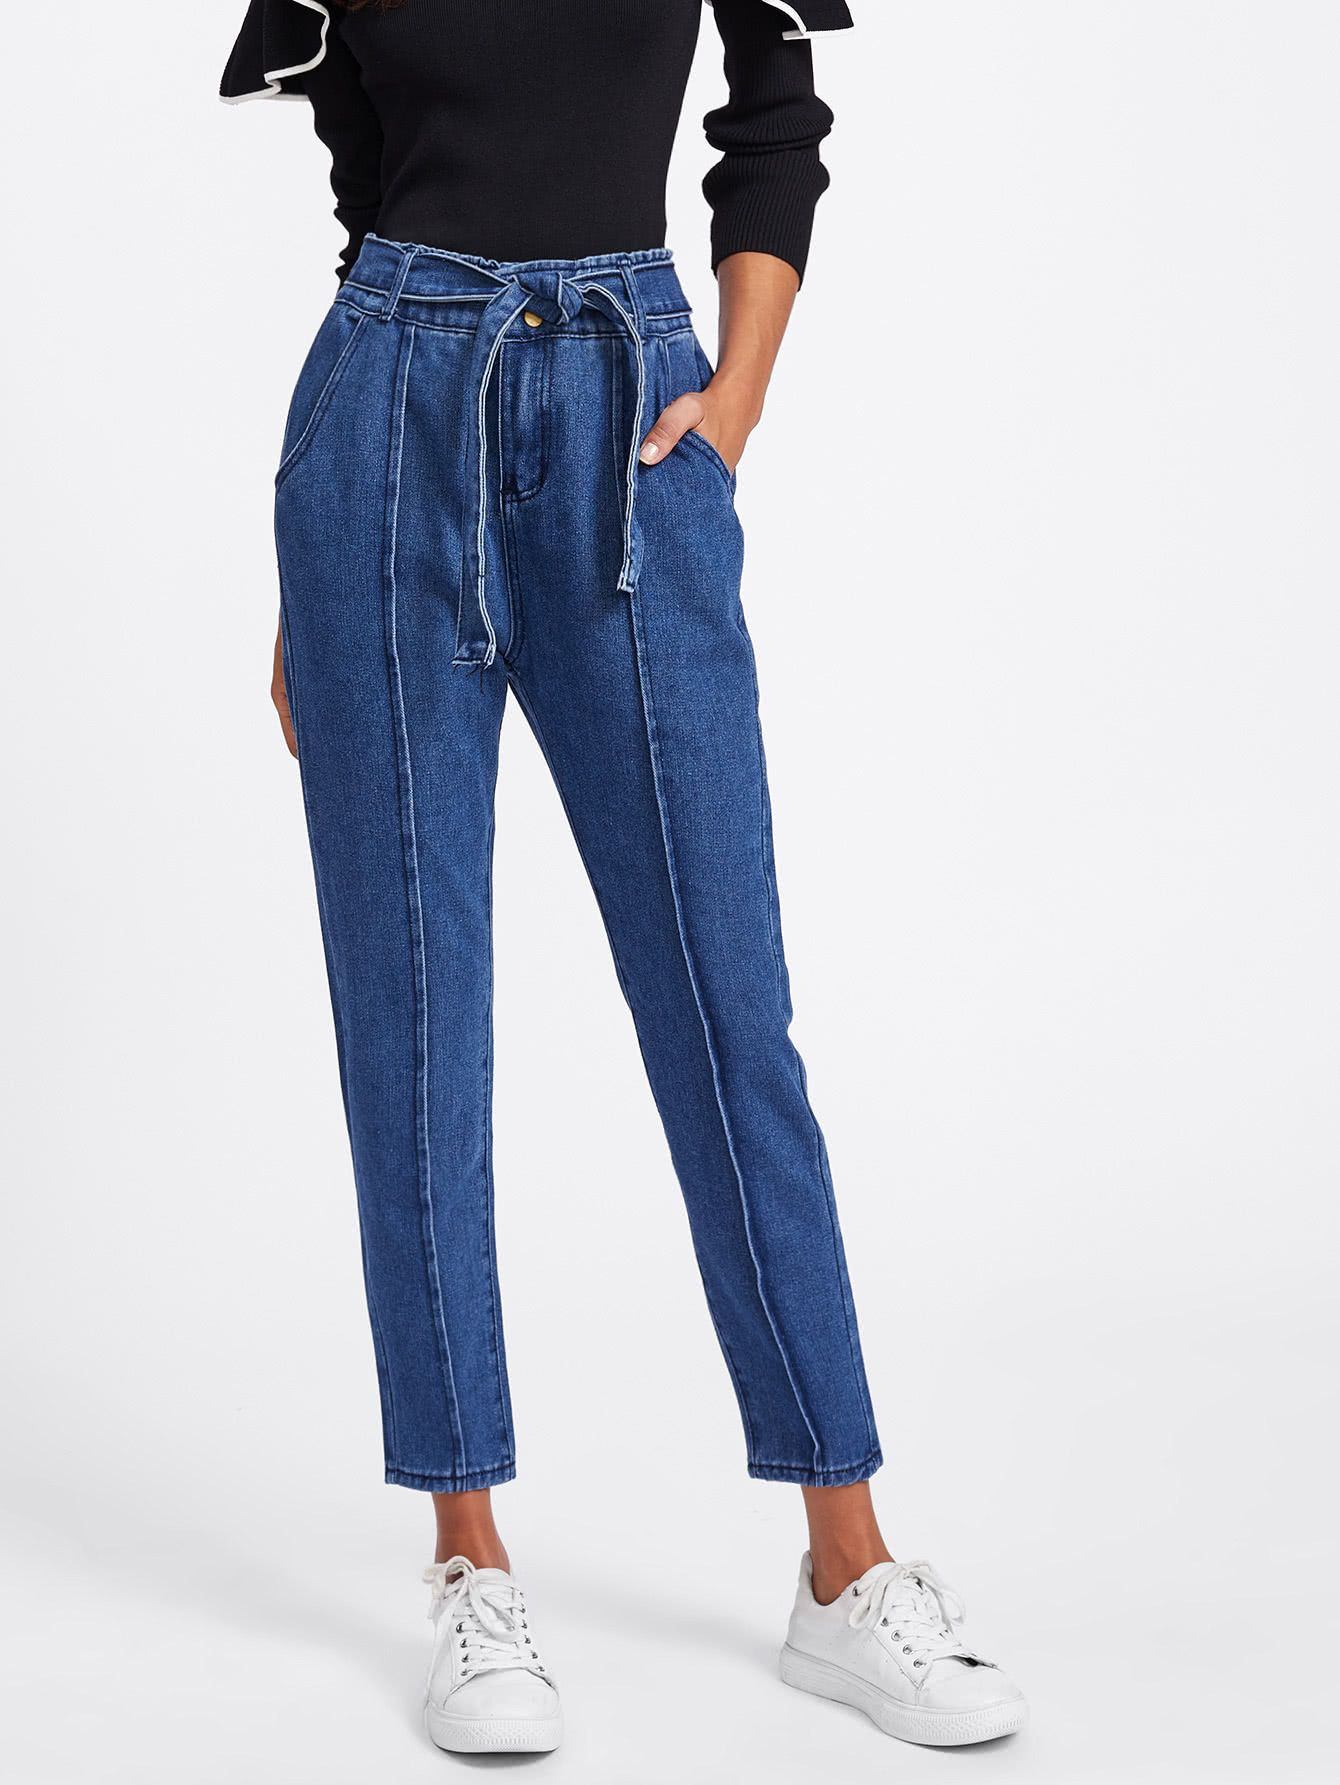 591bf6211ce0 Shop Tie Waist Seam Front Jeans online. SheIn offers Tie Waist Seam Front  Jeans   more to fit your fashionable needs.